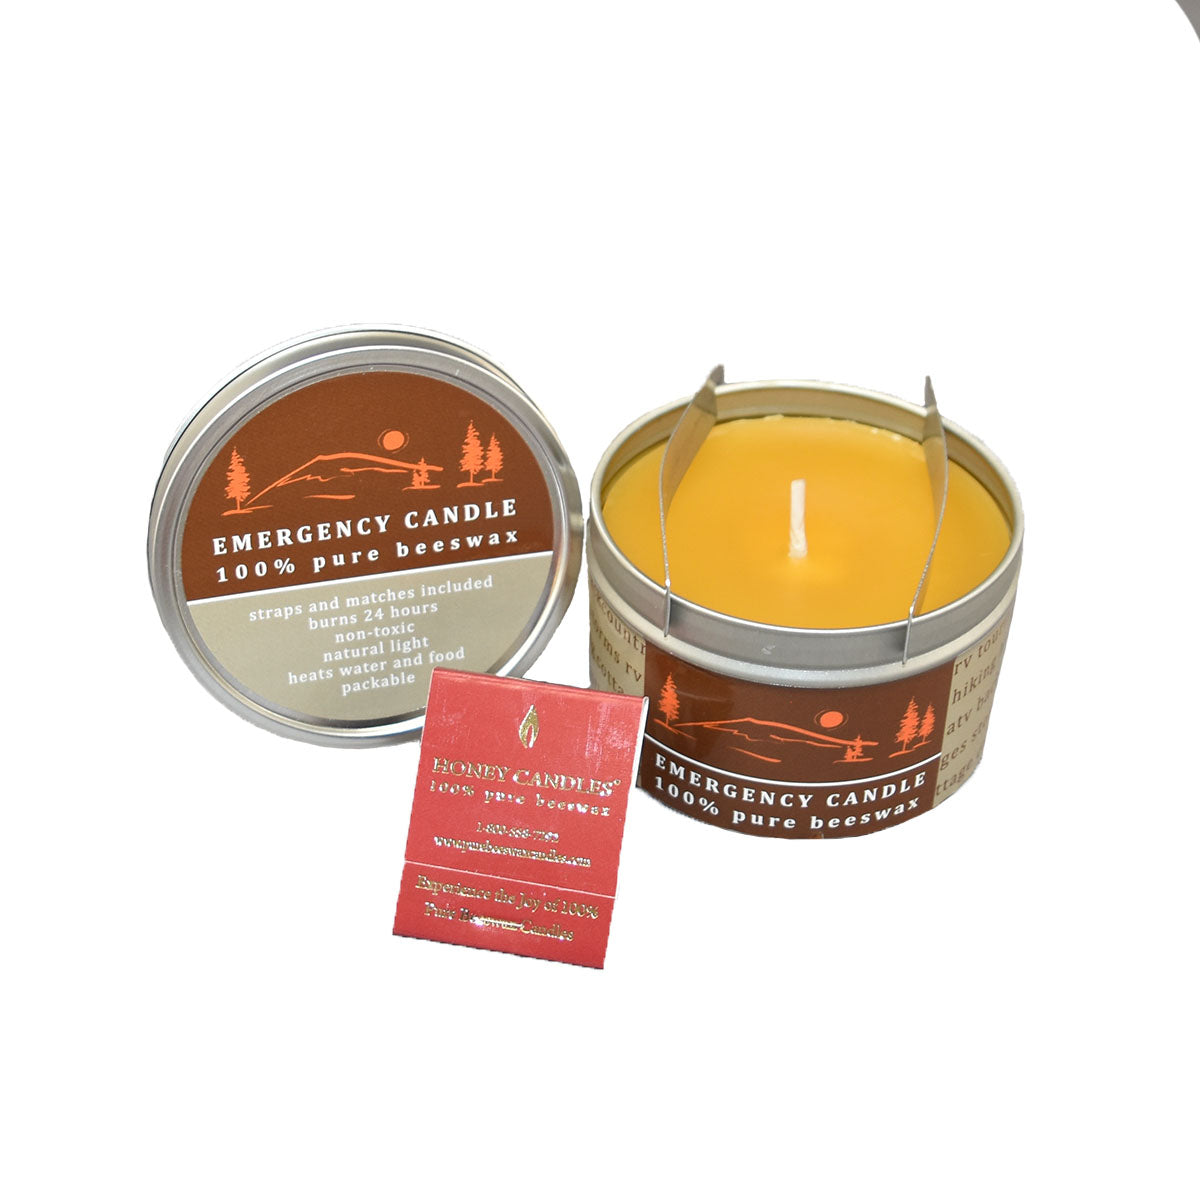 emergency beeswax candle in metal tin with matches and instructions